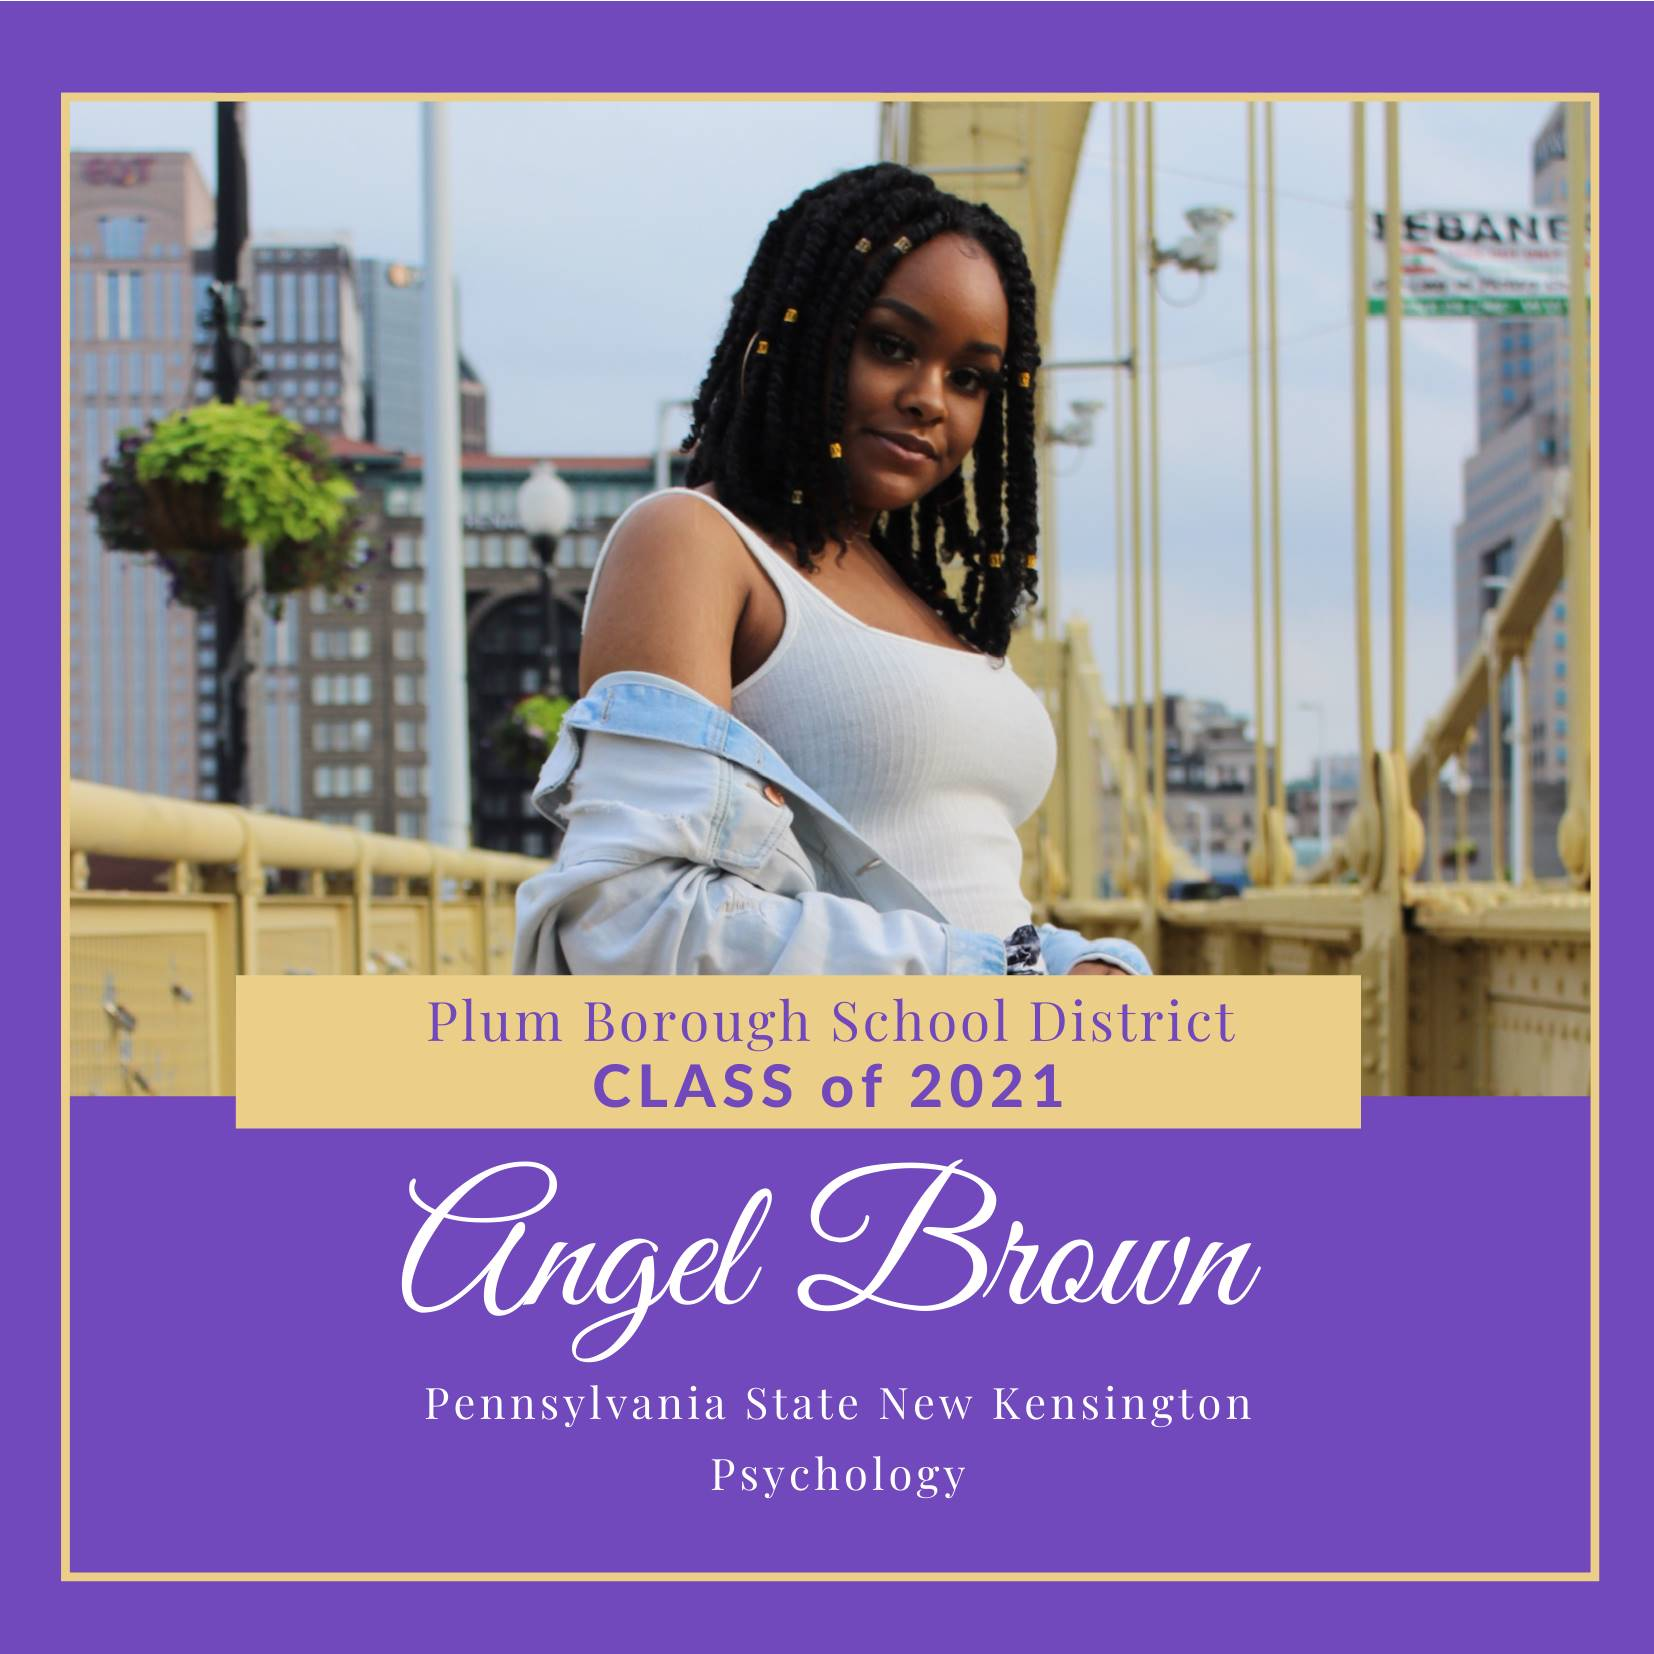 Congratulations to Angel Brown, Class of 2021!